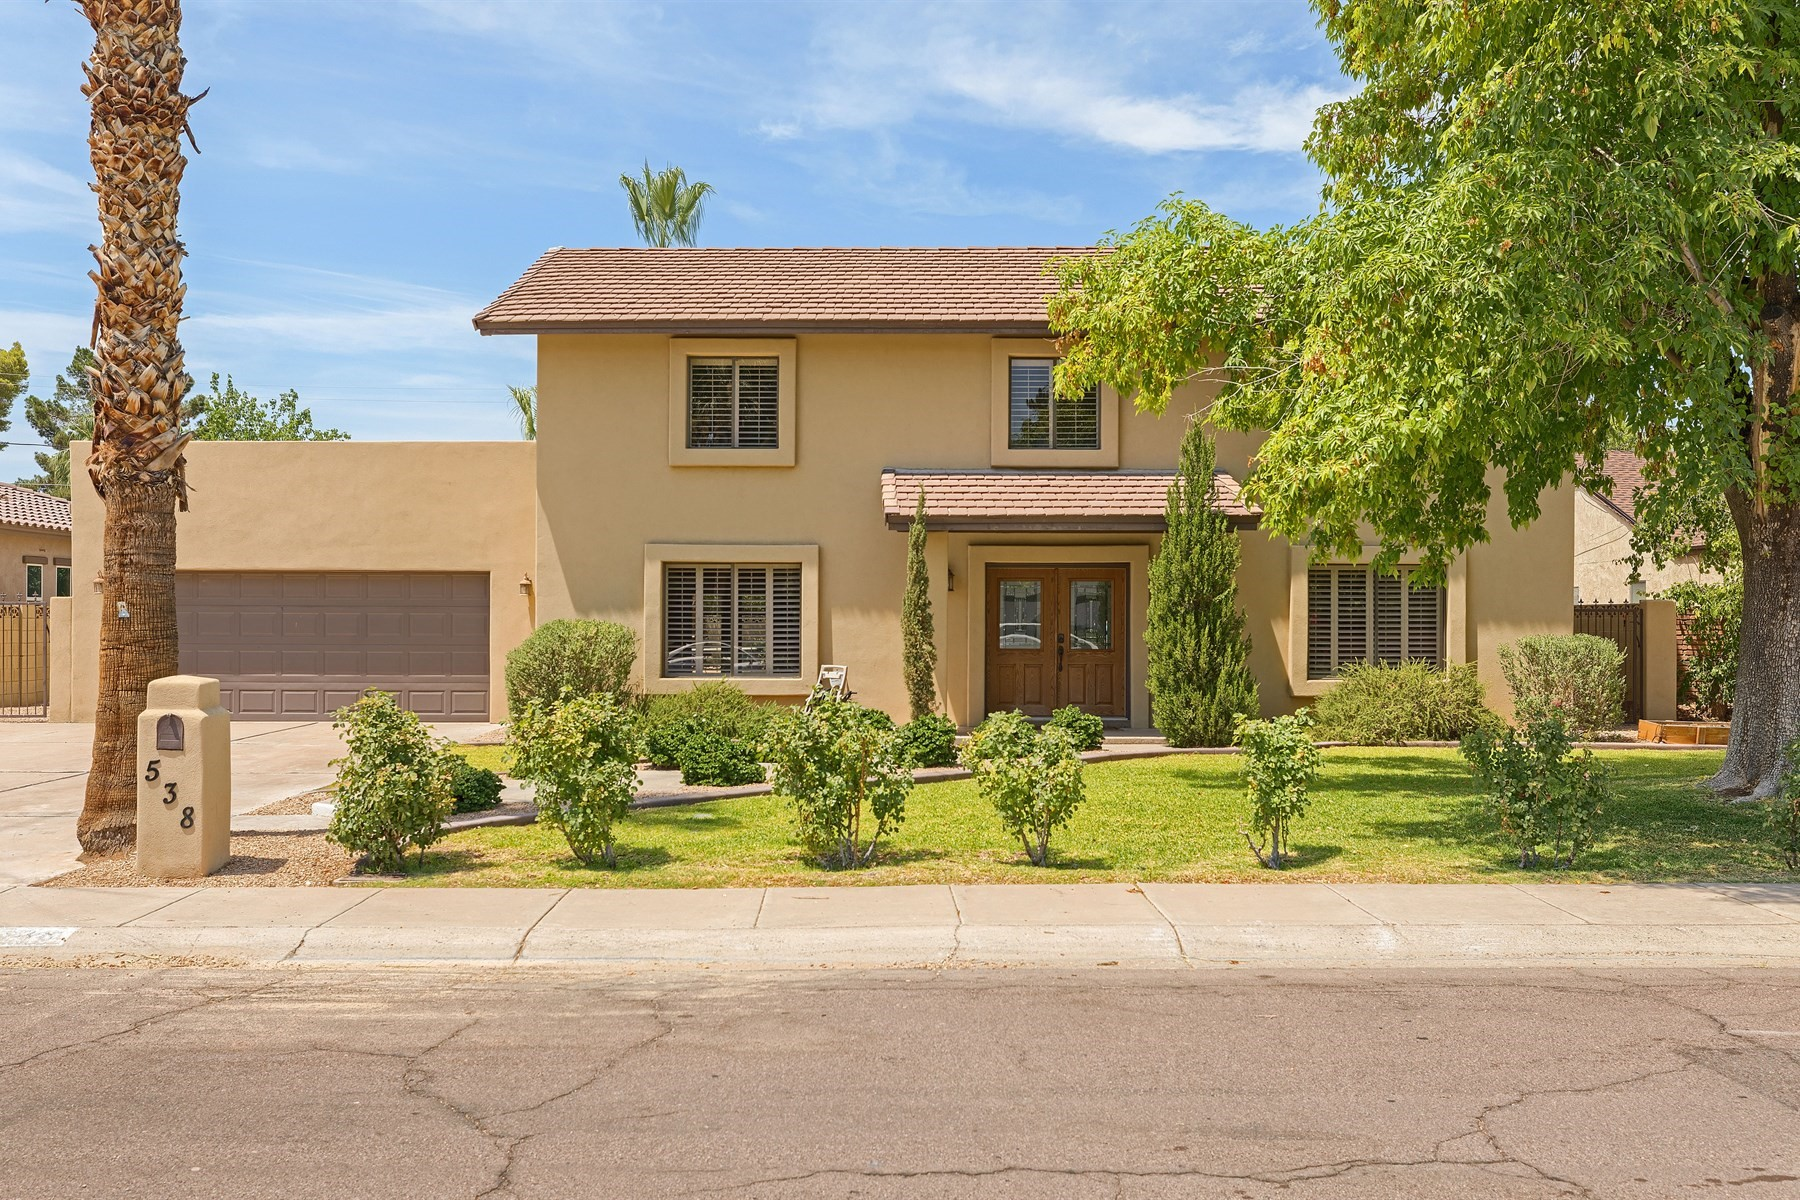 Moradia para Venda às Charming home in highly desired North Central Phoenix location 538 W Las Palmaritas Dr Phoenix, Arizona, 85021 Estados Unidos